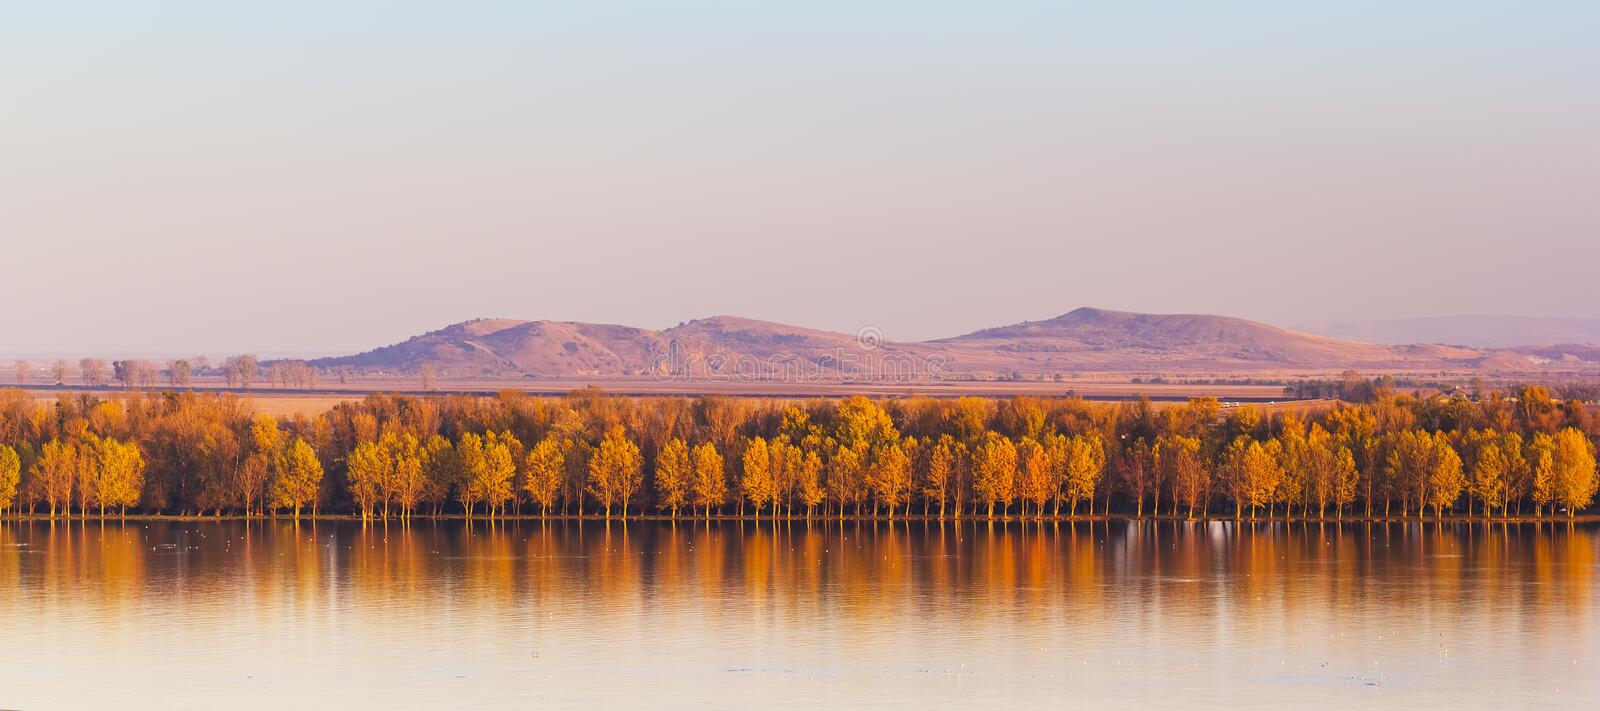 Rio de Autumn Trees Mirroring On Danube com as montanhas de Macin no fundo imagem de stock royalty free